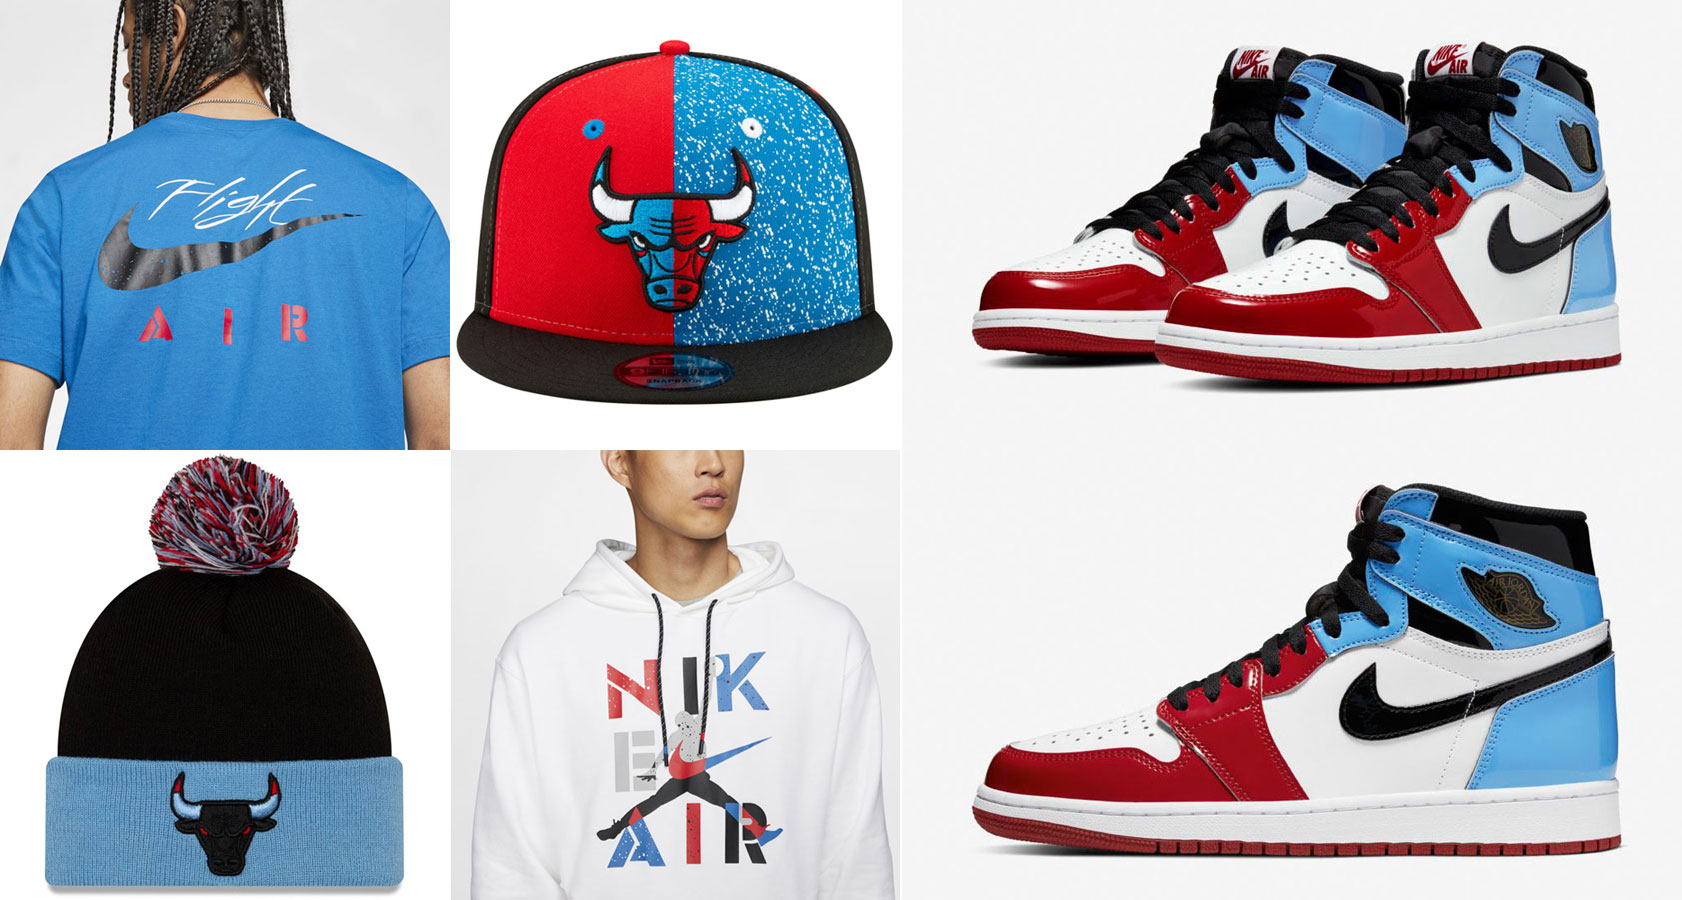 outfits to wear with jordan 1s